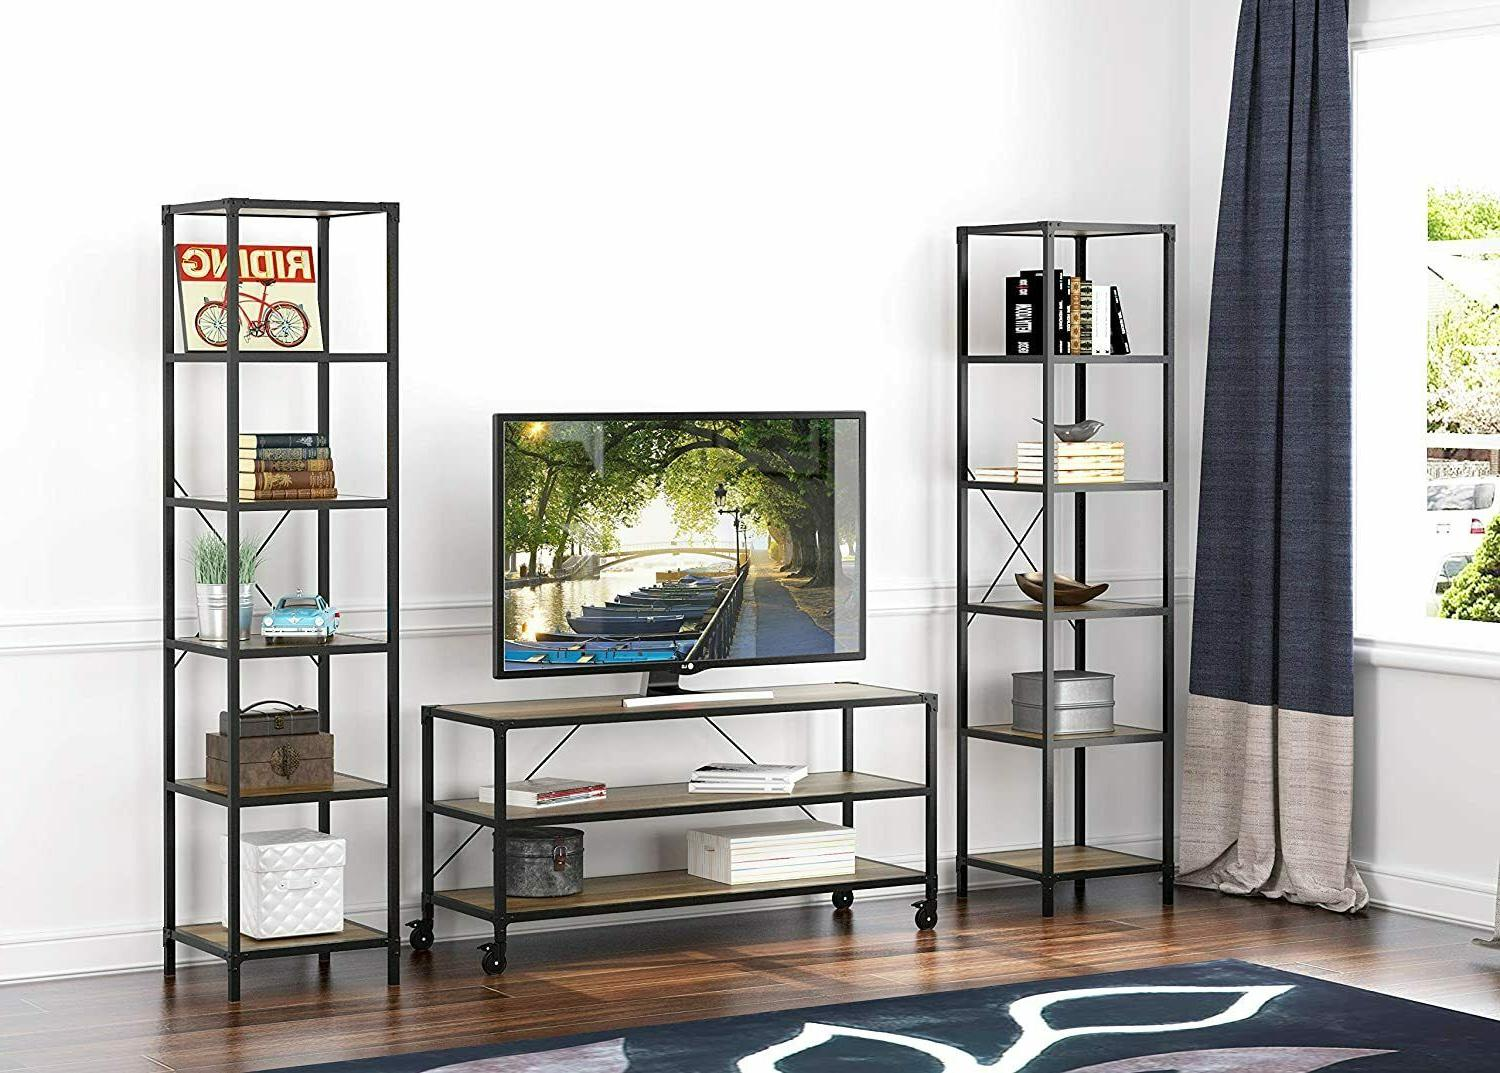 eHemco Antique TV Stand and Entertainment Center with Wheels